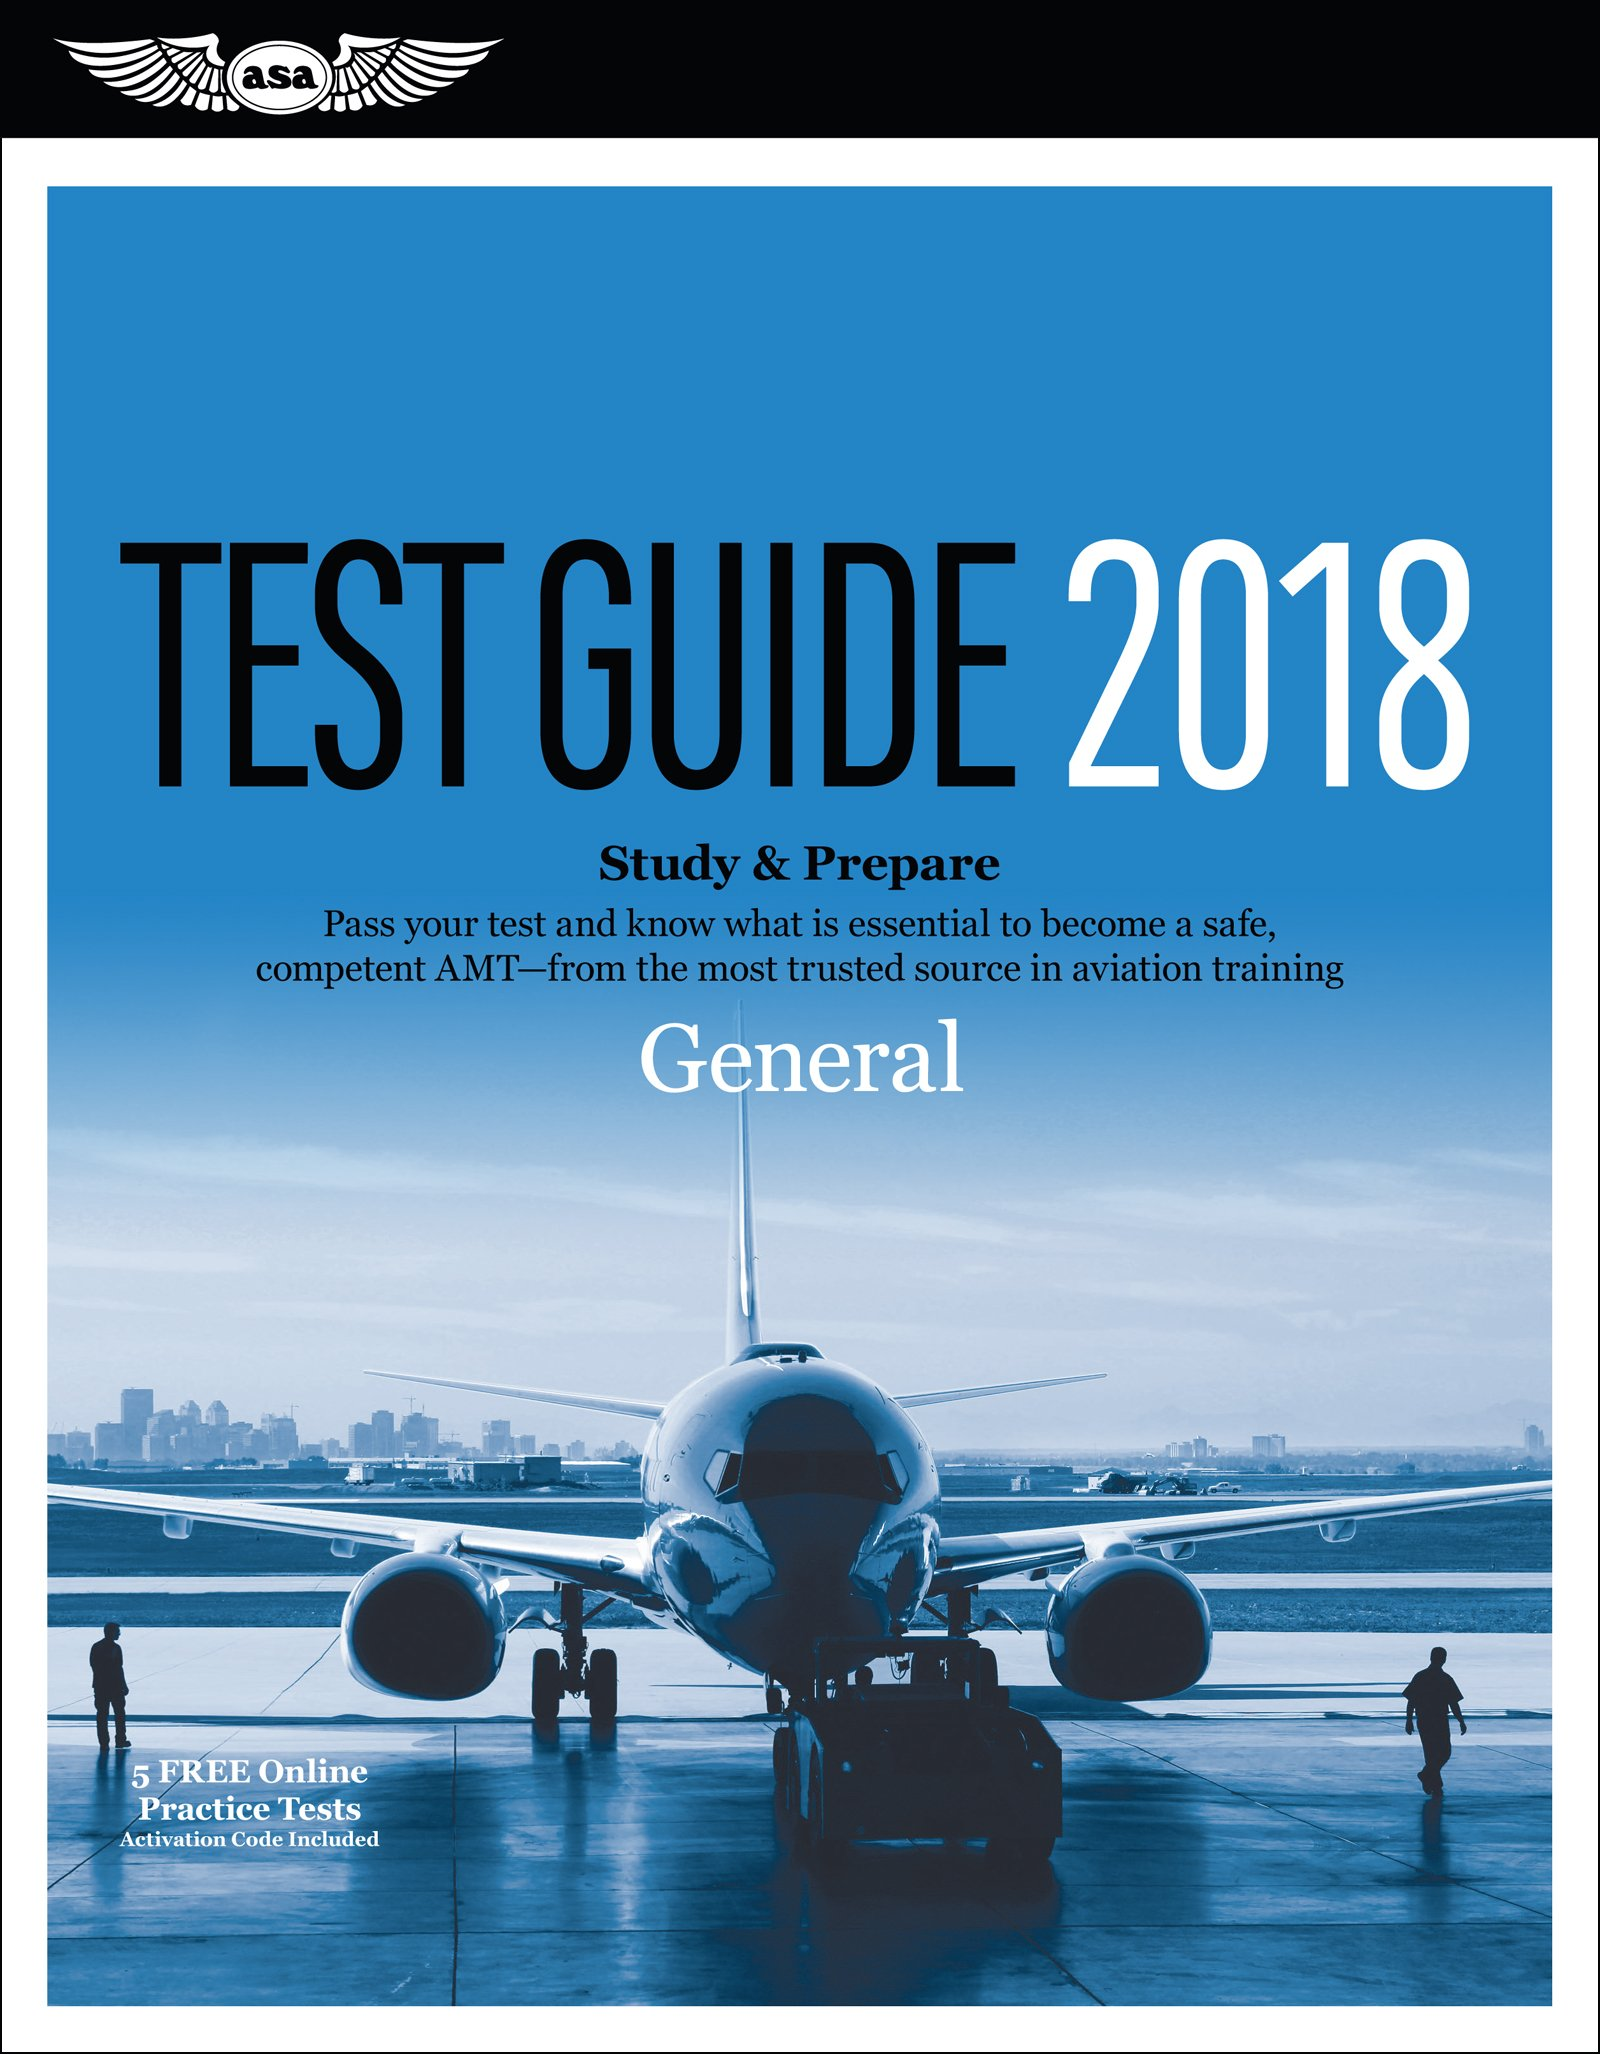 General Test Guide 2018: Pass your test and know what is